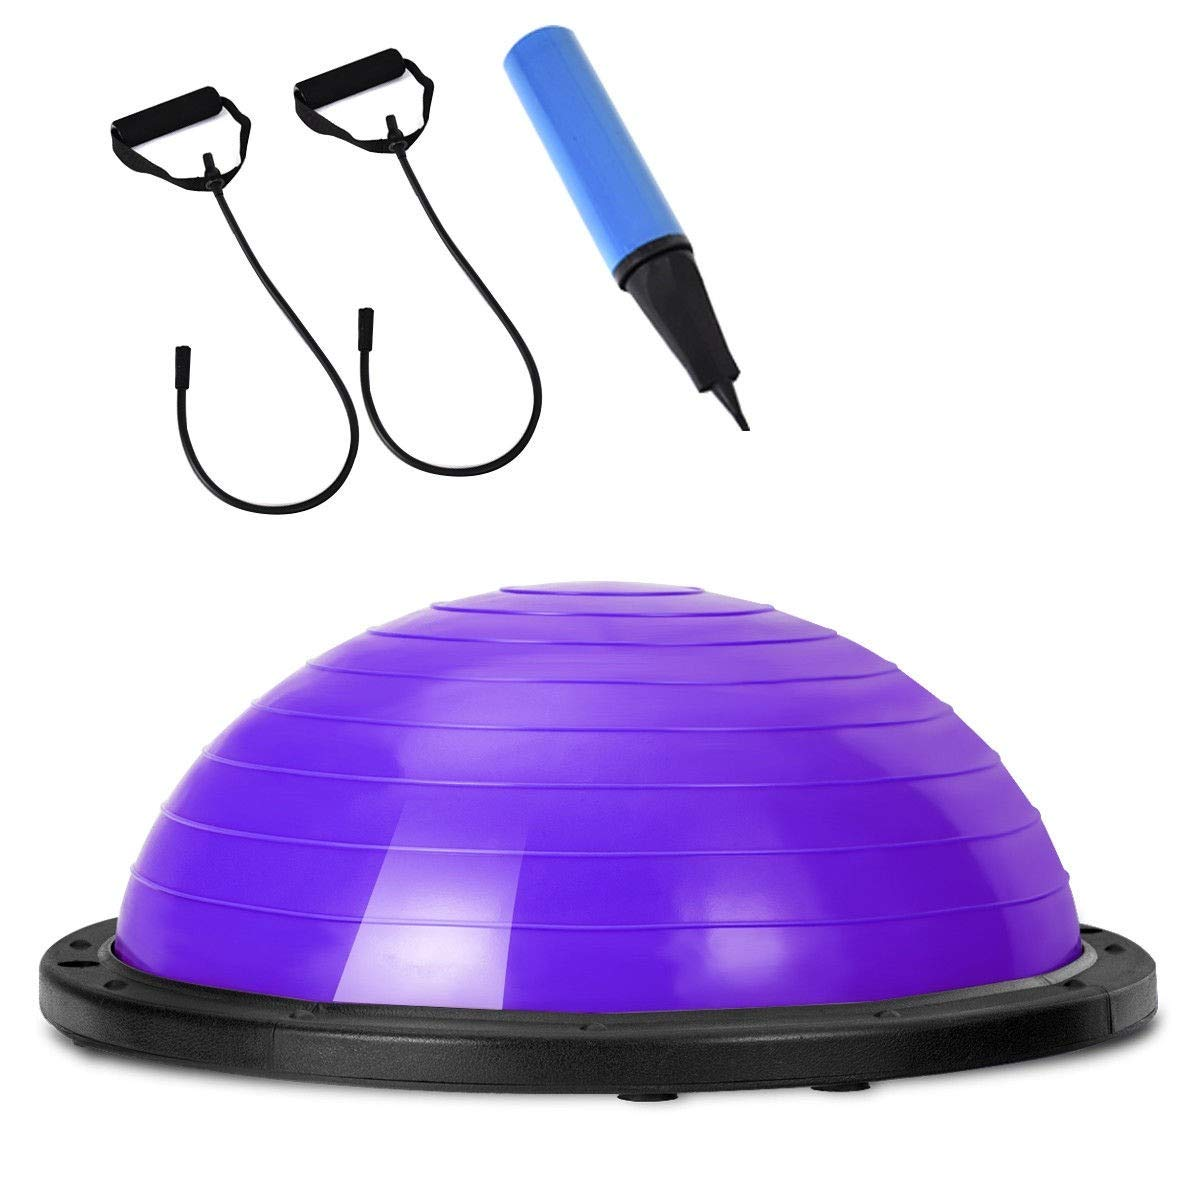 Exercise Ball, 23'' Exercise Yoga Ball Balance Trainer with Pump, Purple by MD Group (Image #1)